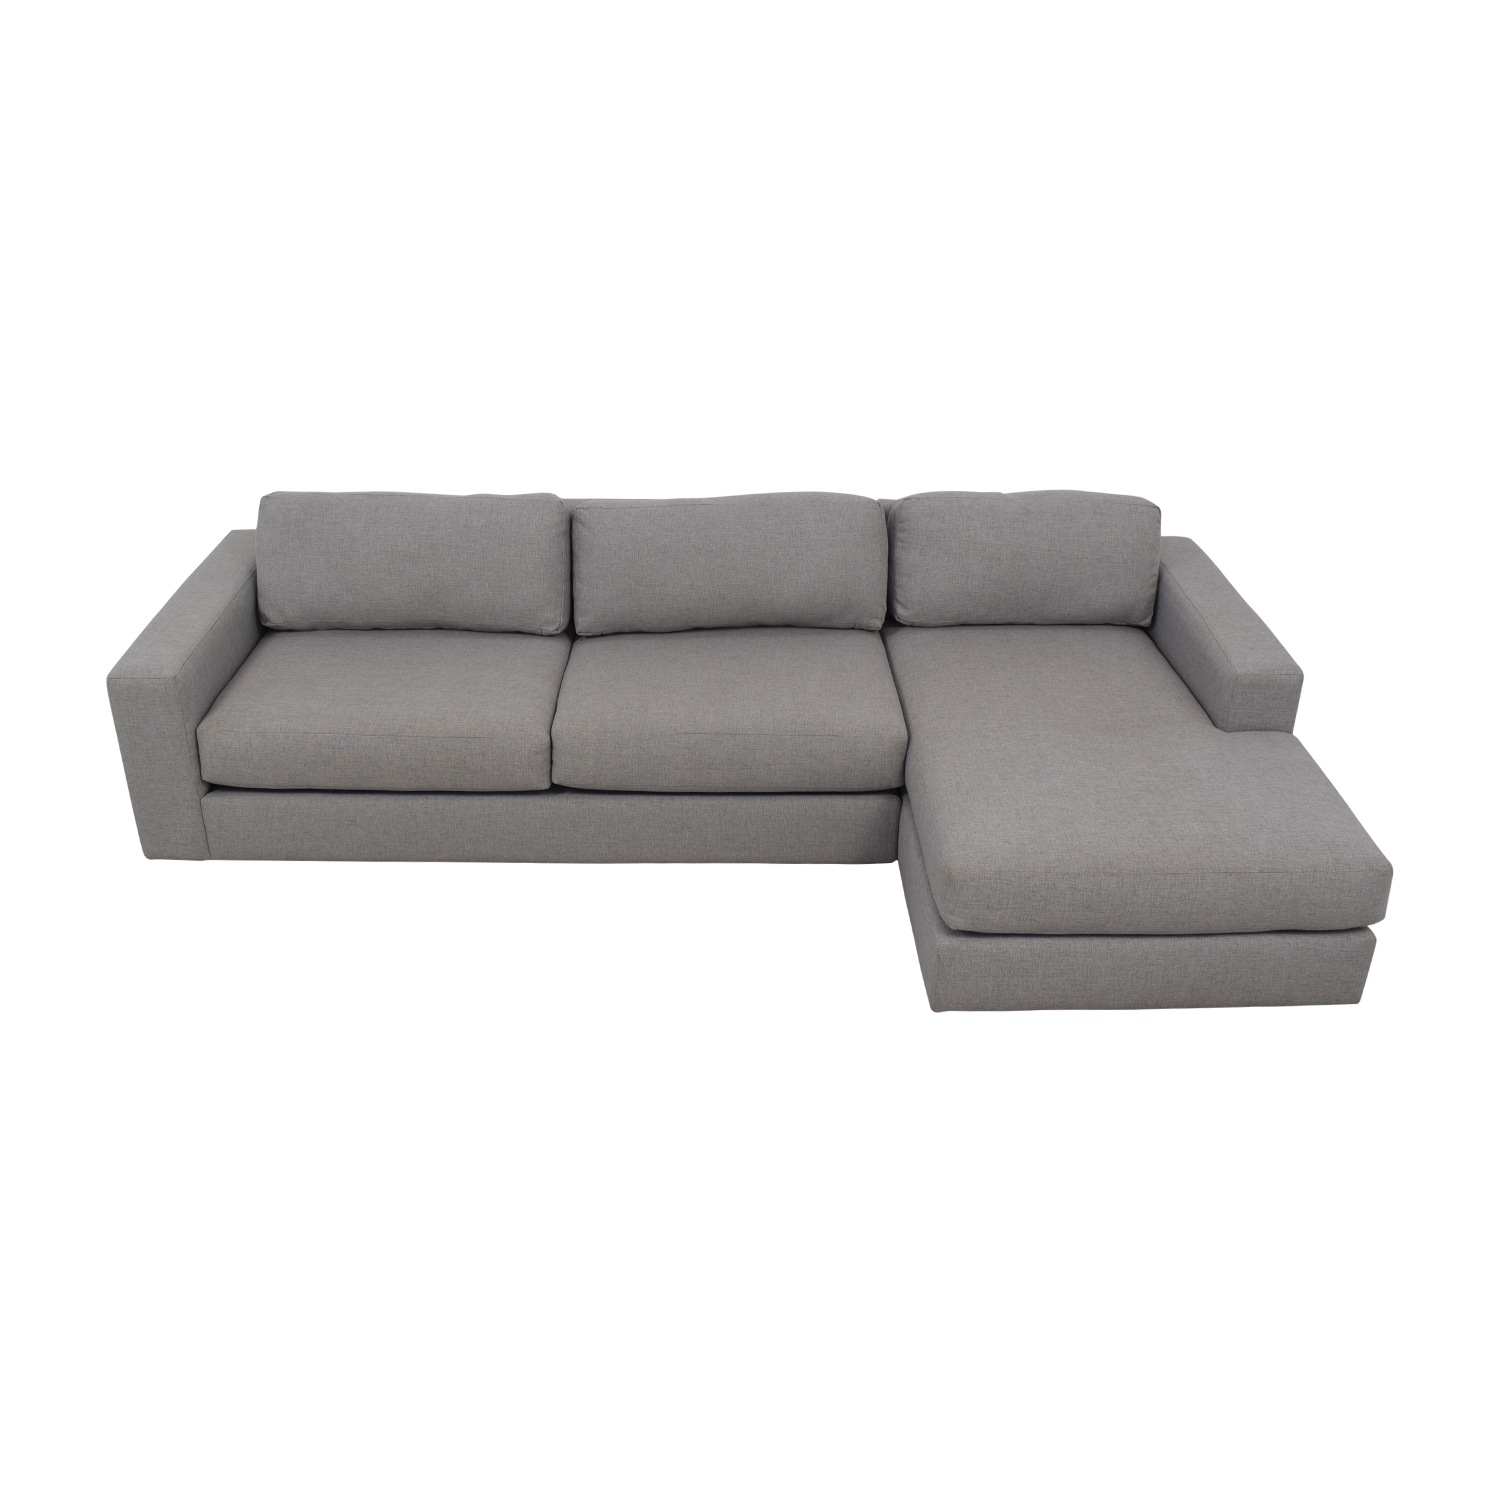 65% Off – West Elm West Elm Urban Chaise Sectional Sofa For West Elm Sectional Sofas (View 9 of 15)